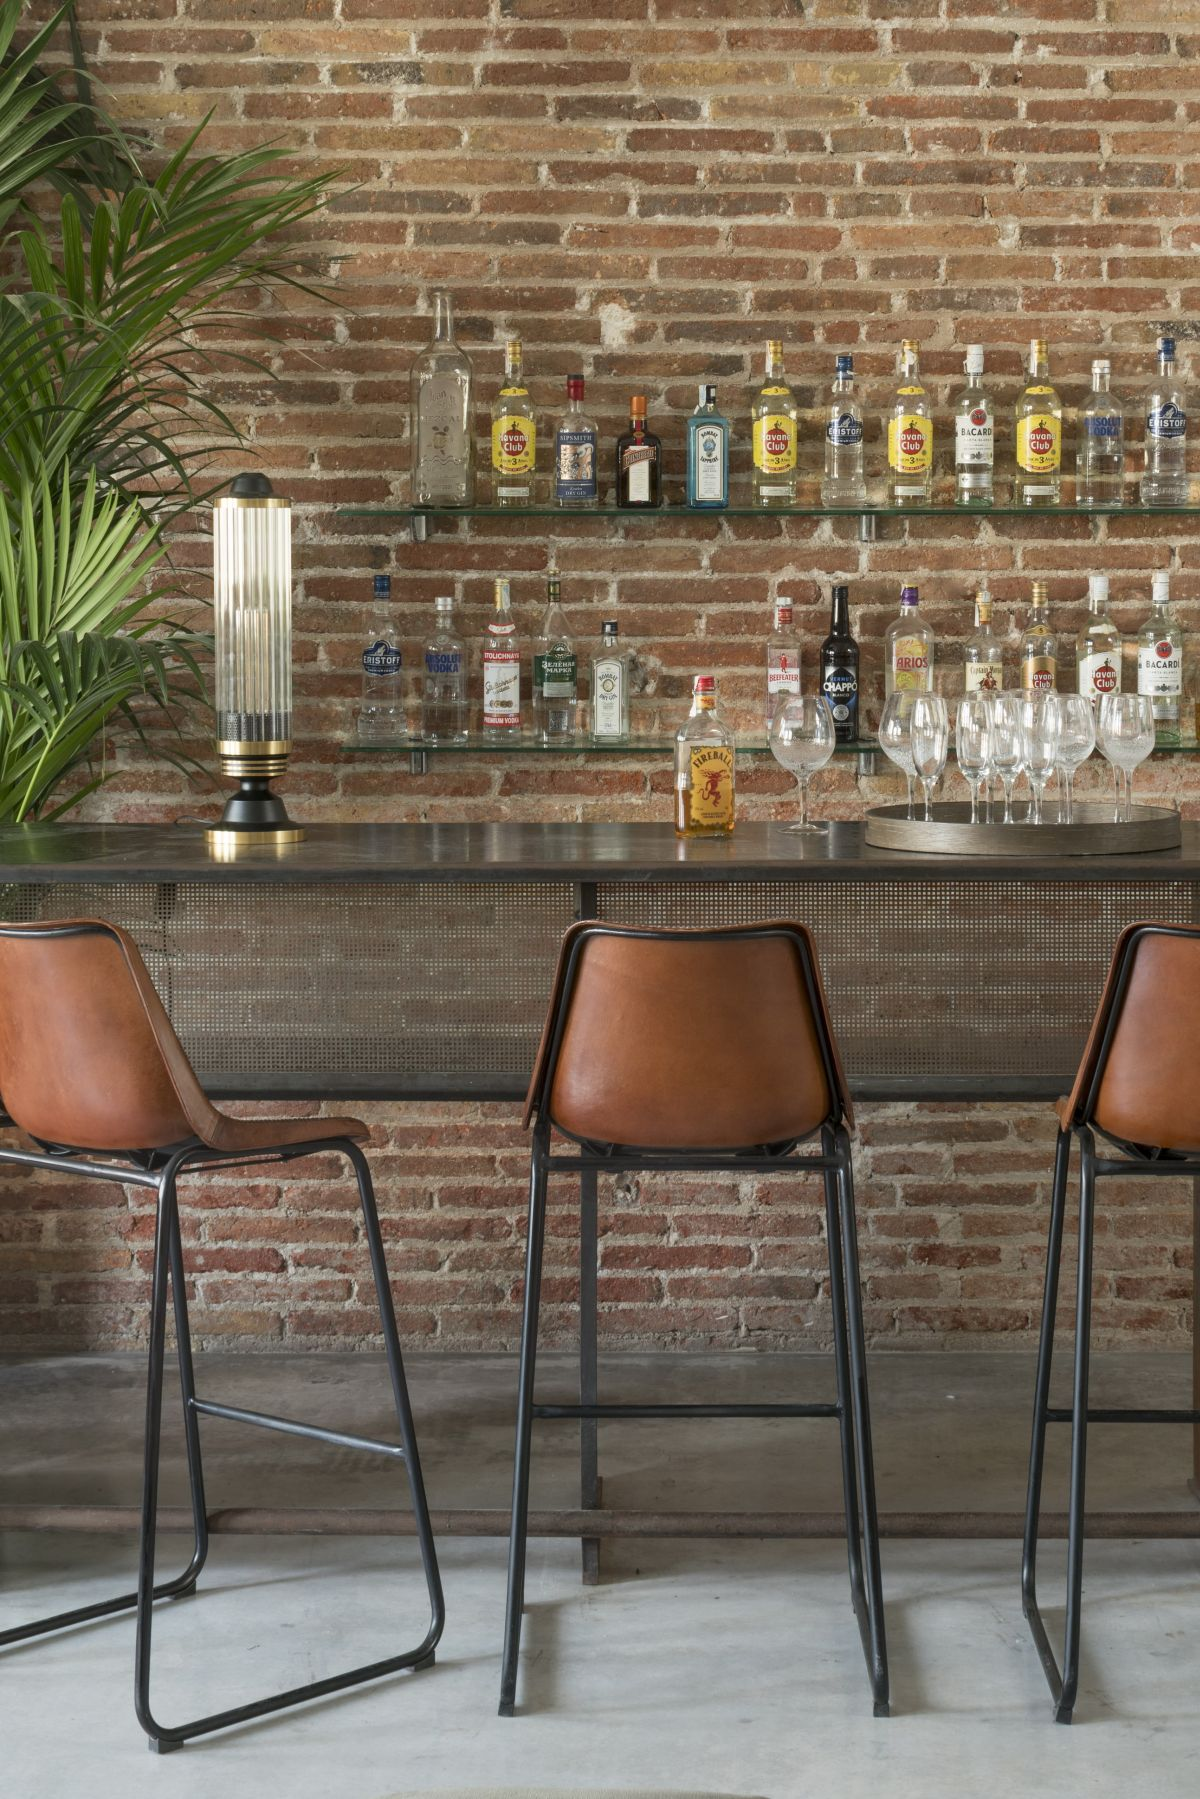 The new design preserves a lot of the original features of the apartment including the brick walls